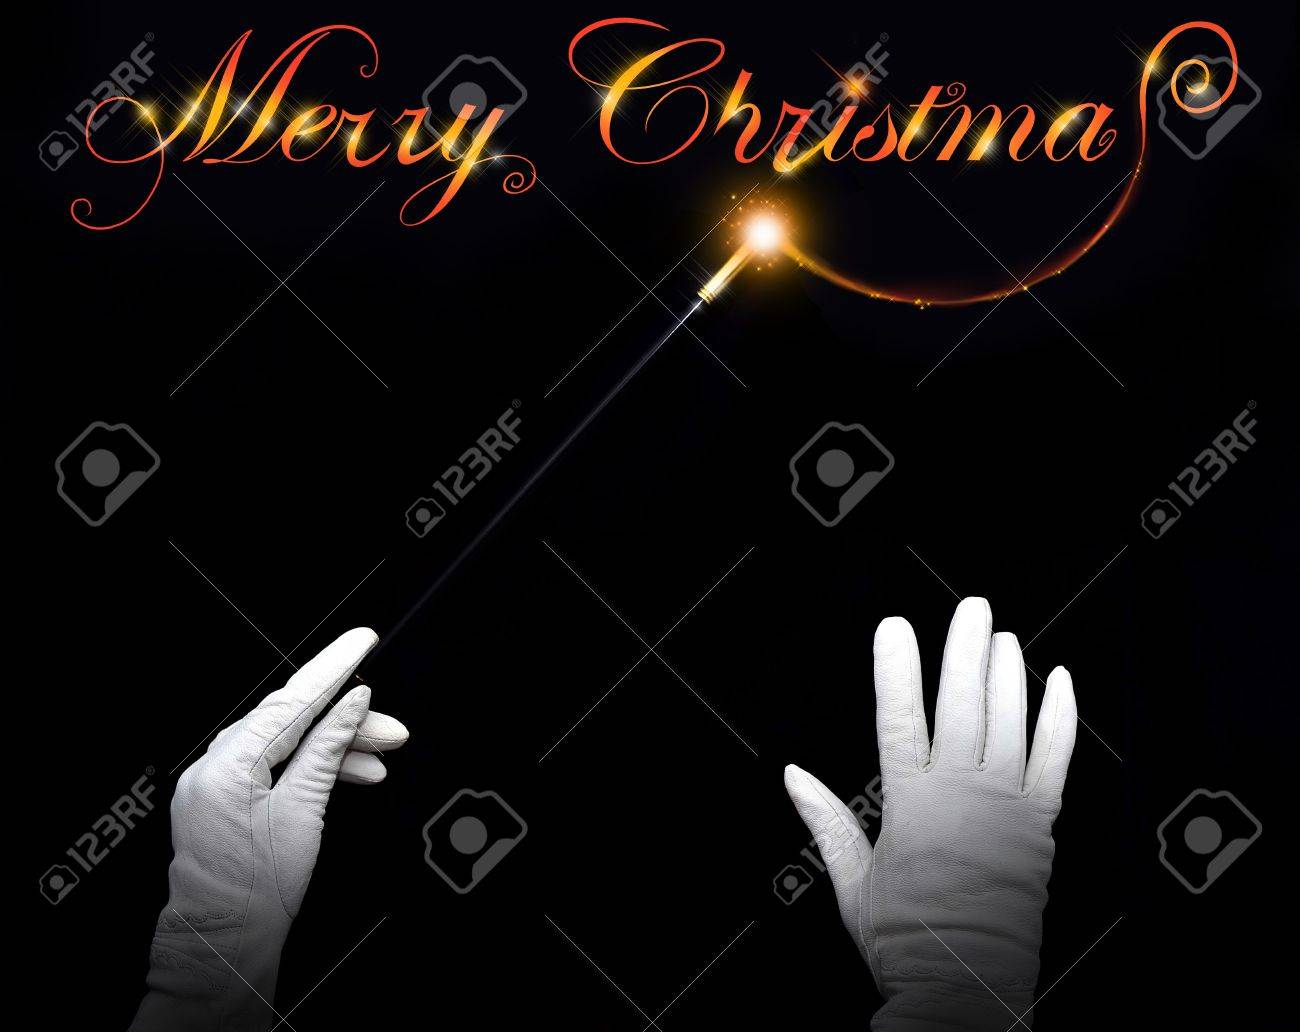 Wizard hands drawing 'Merry Christmas' on a black background Stock Photo - 11143224